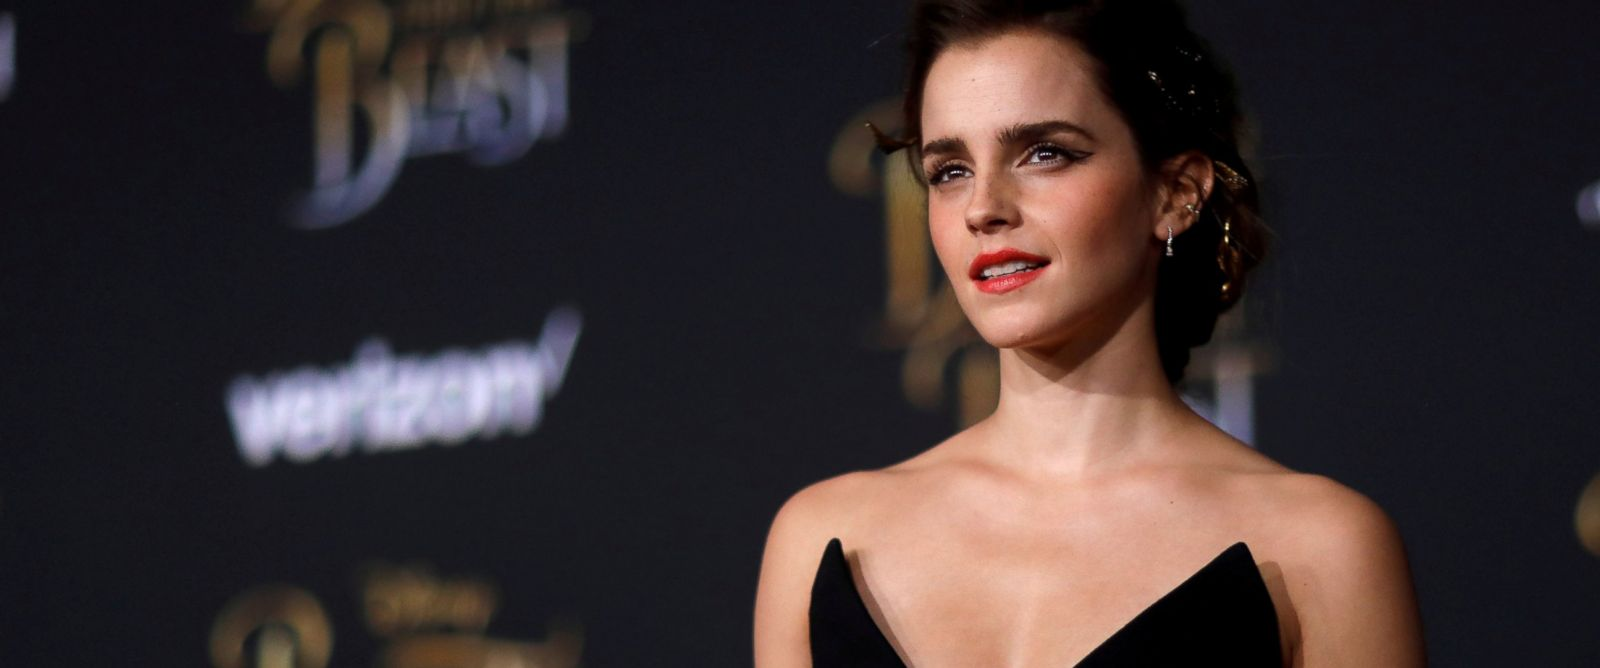 """PHOTO: Emma Watson poses at the premiere of """"Beauty and the Beast"""" in Los Angeles, March 2, 2017."""